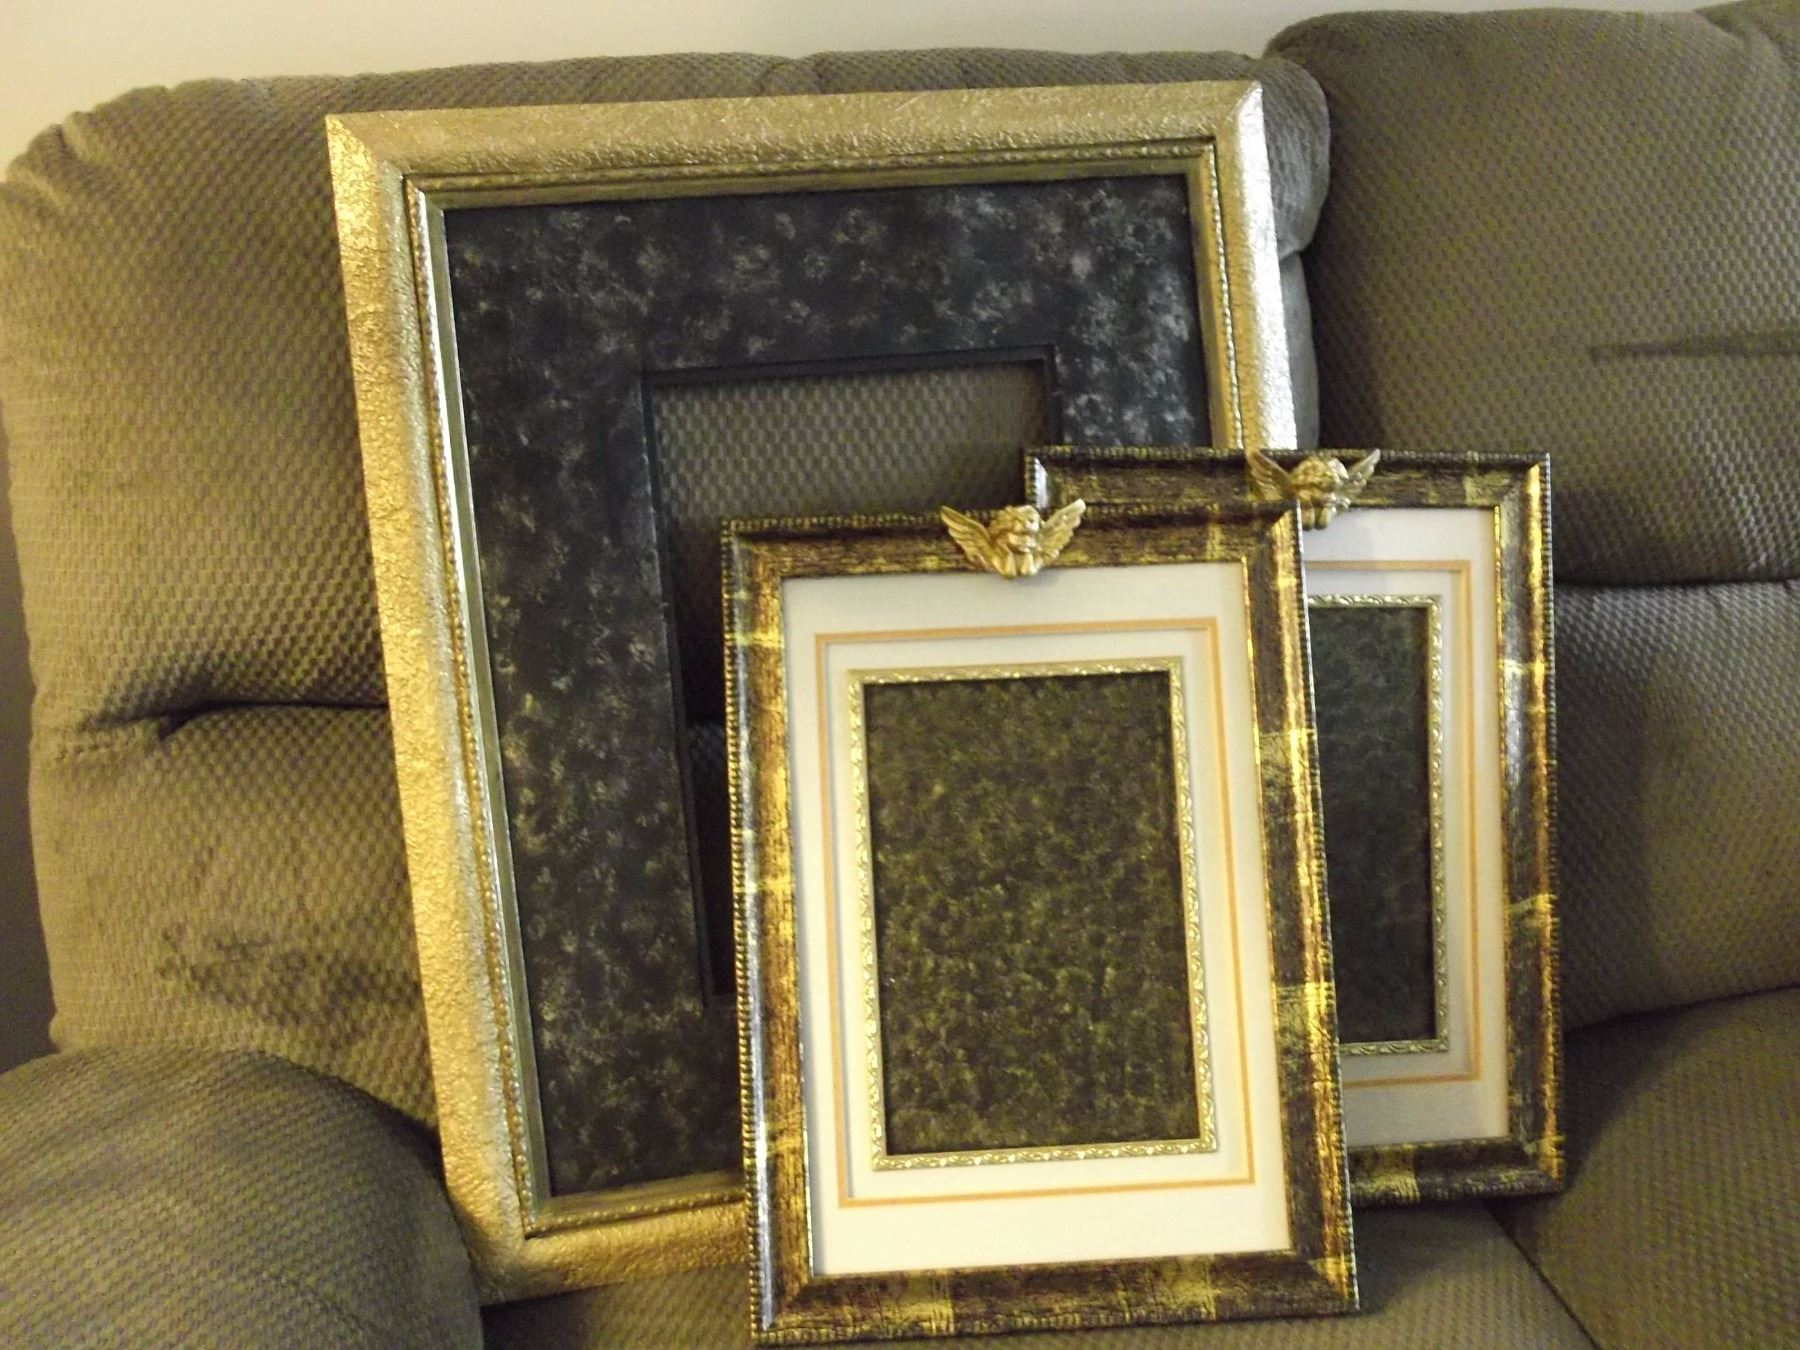 Picture frames 2 angel frames 16x11 1 frame 24x19 image 1 picture frames 2 angel frames 16x11 1 frame jeuxipadfo Image collections